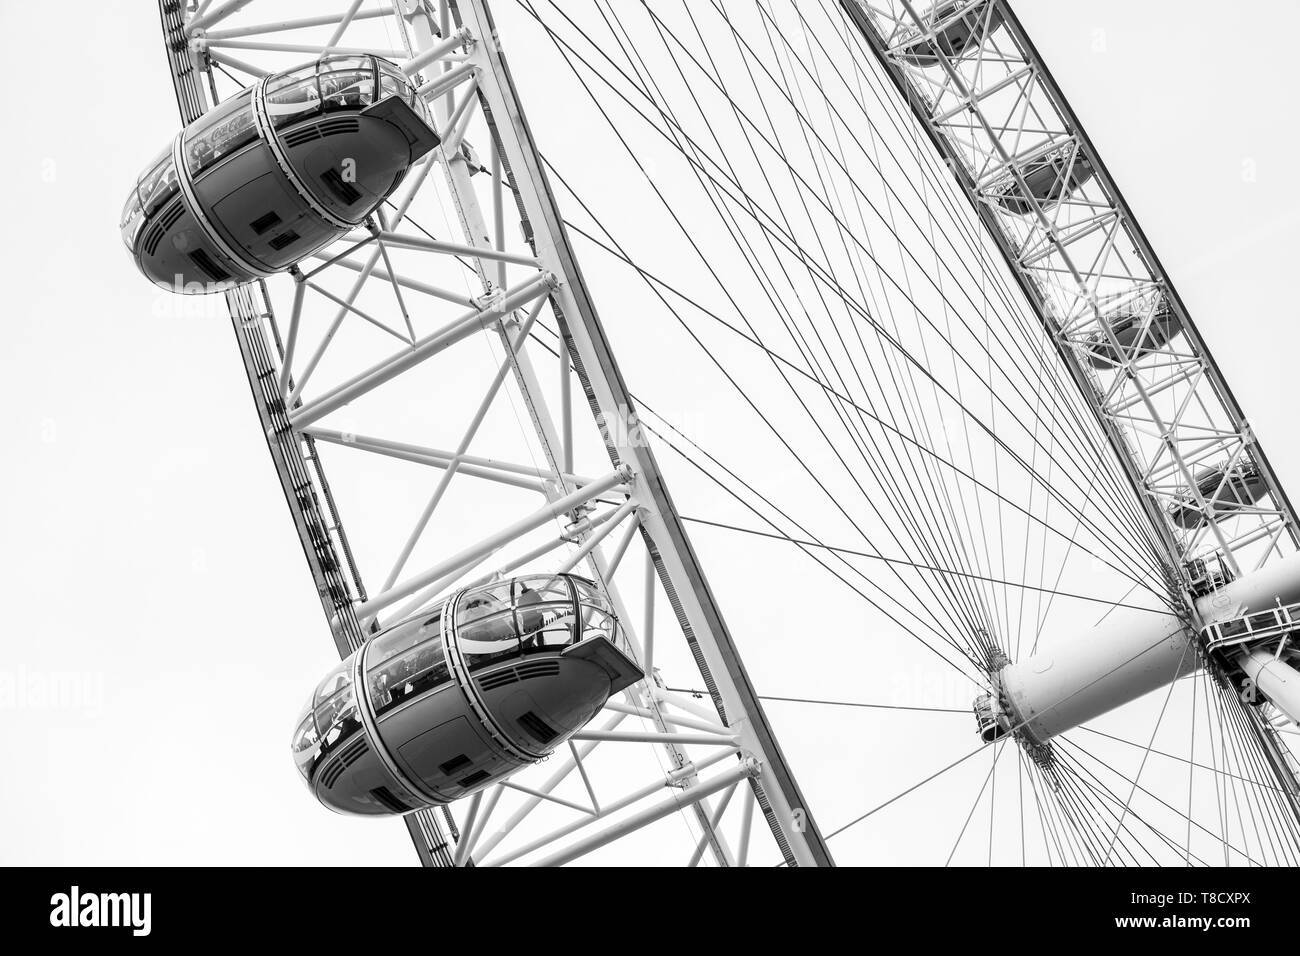 London, United Kingdom - October 31, 2017: Fragment of London Eye giant Ferris wheel mounted on the South Bank of River Thames in London - Stock Image